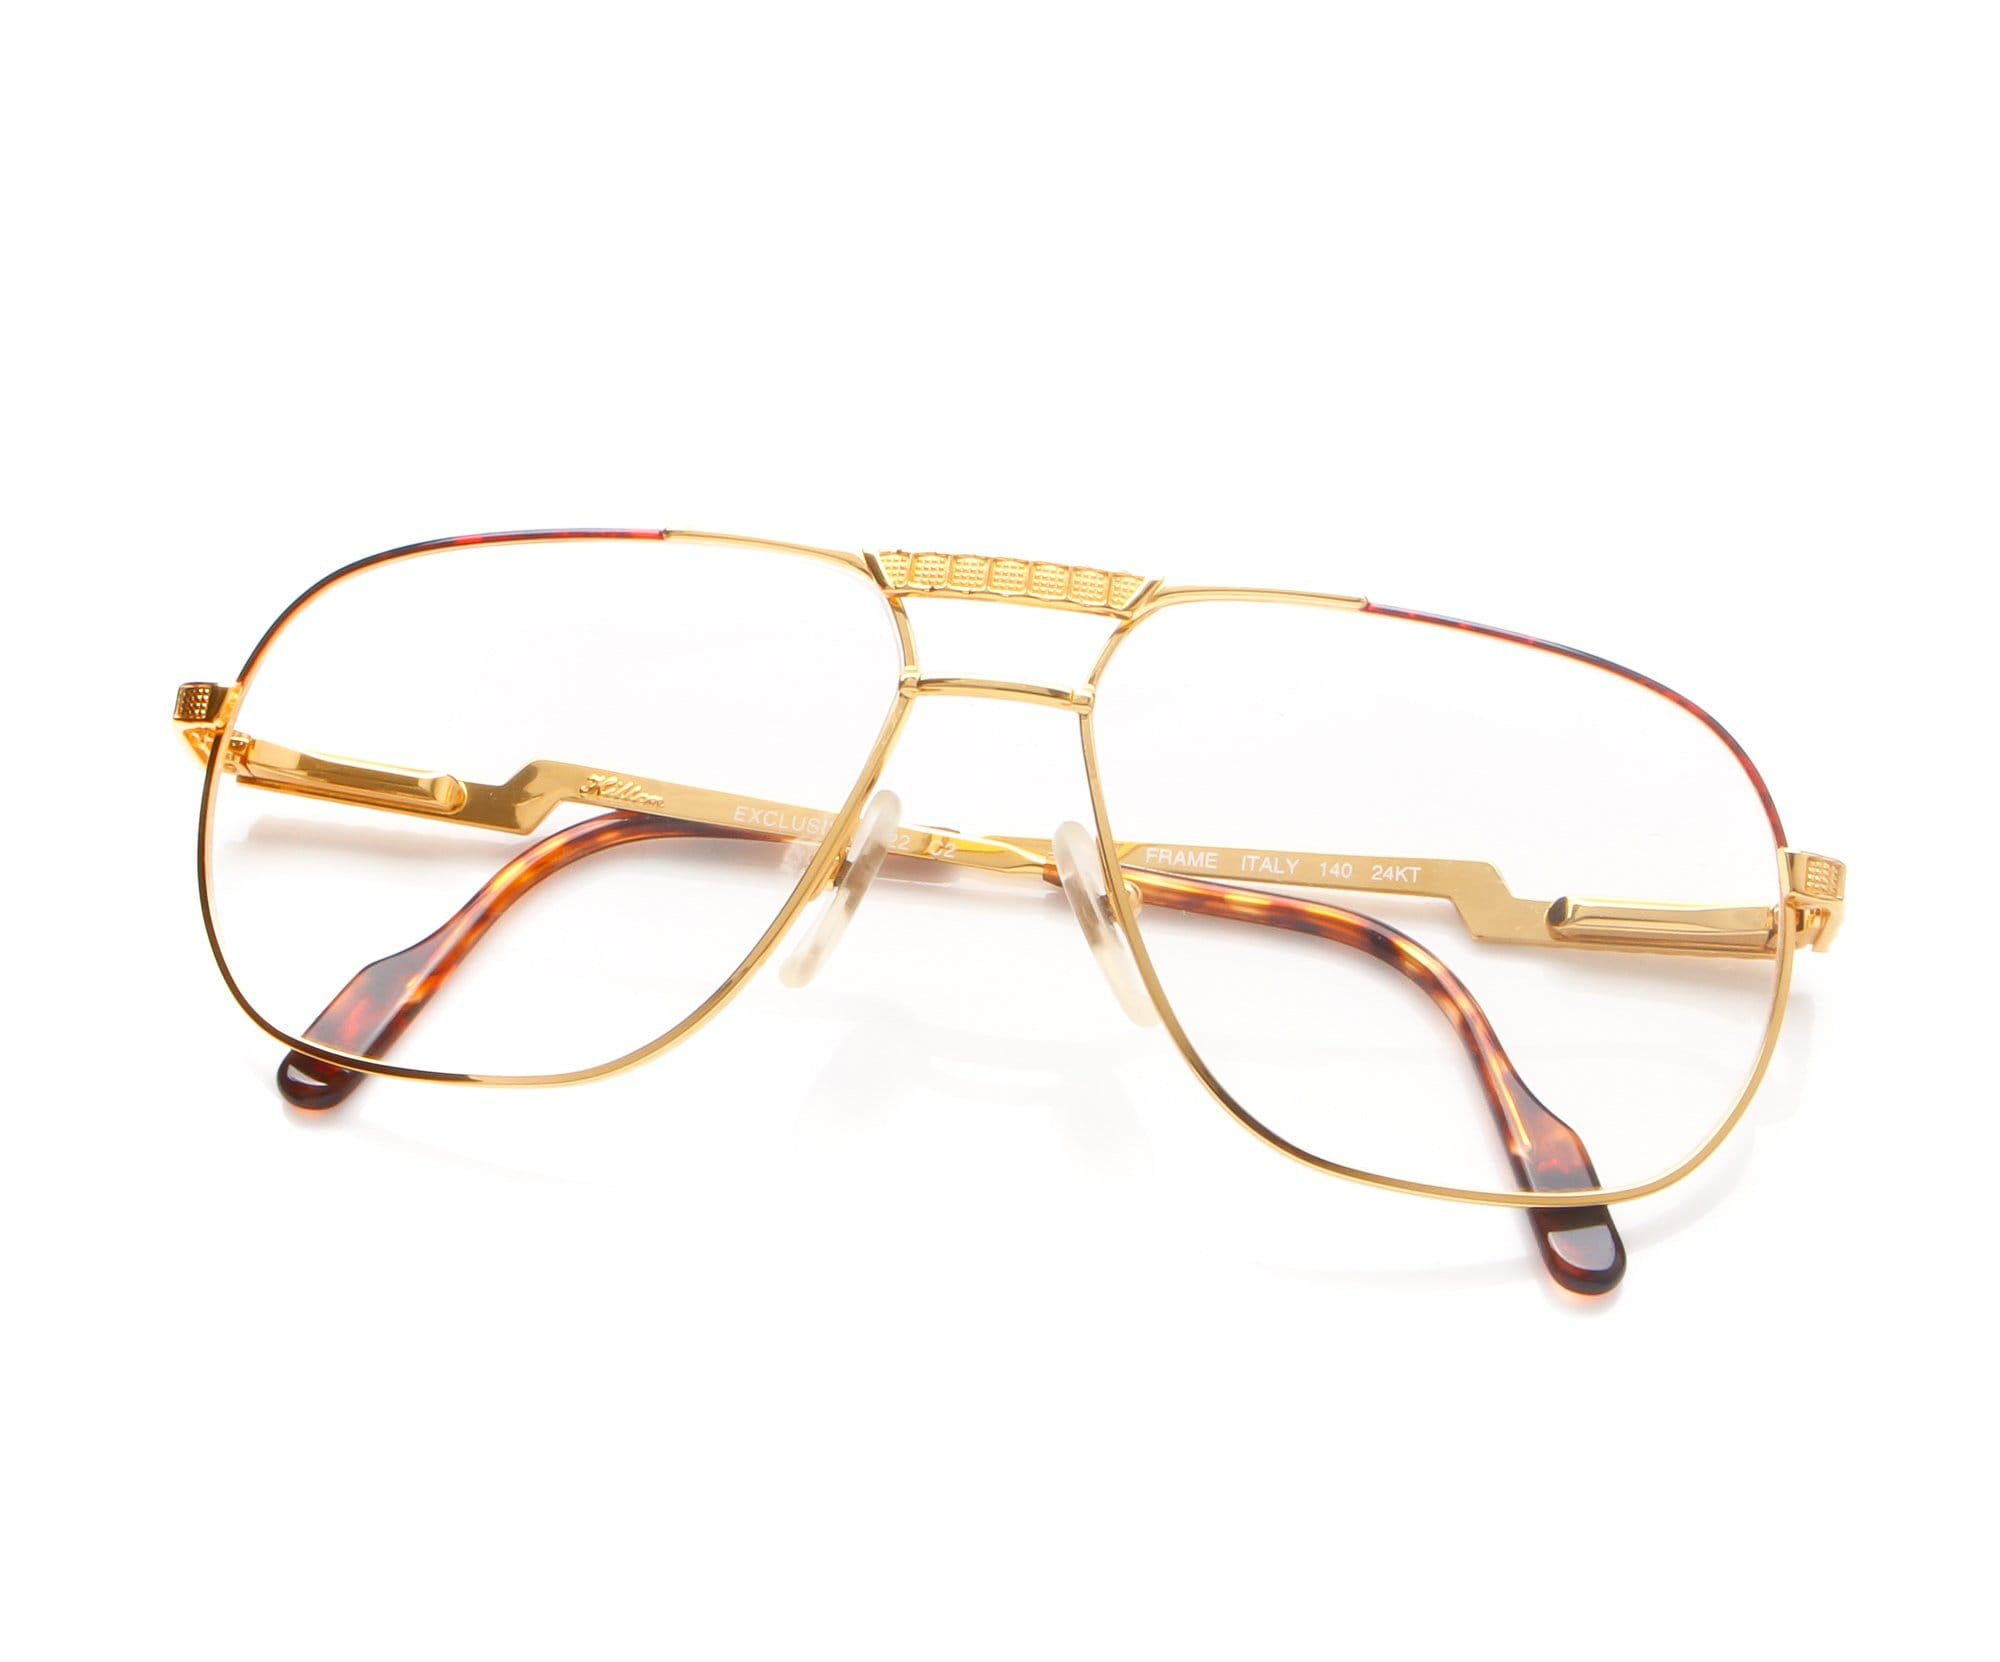 c90f00871b3 Vintage Hilton EXCLUSIVE 022 C2 Gold Brown 24Kt Gold Plated